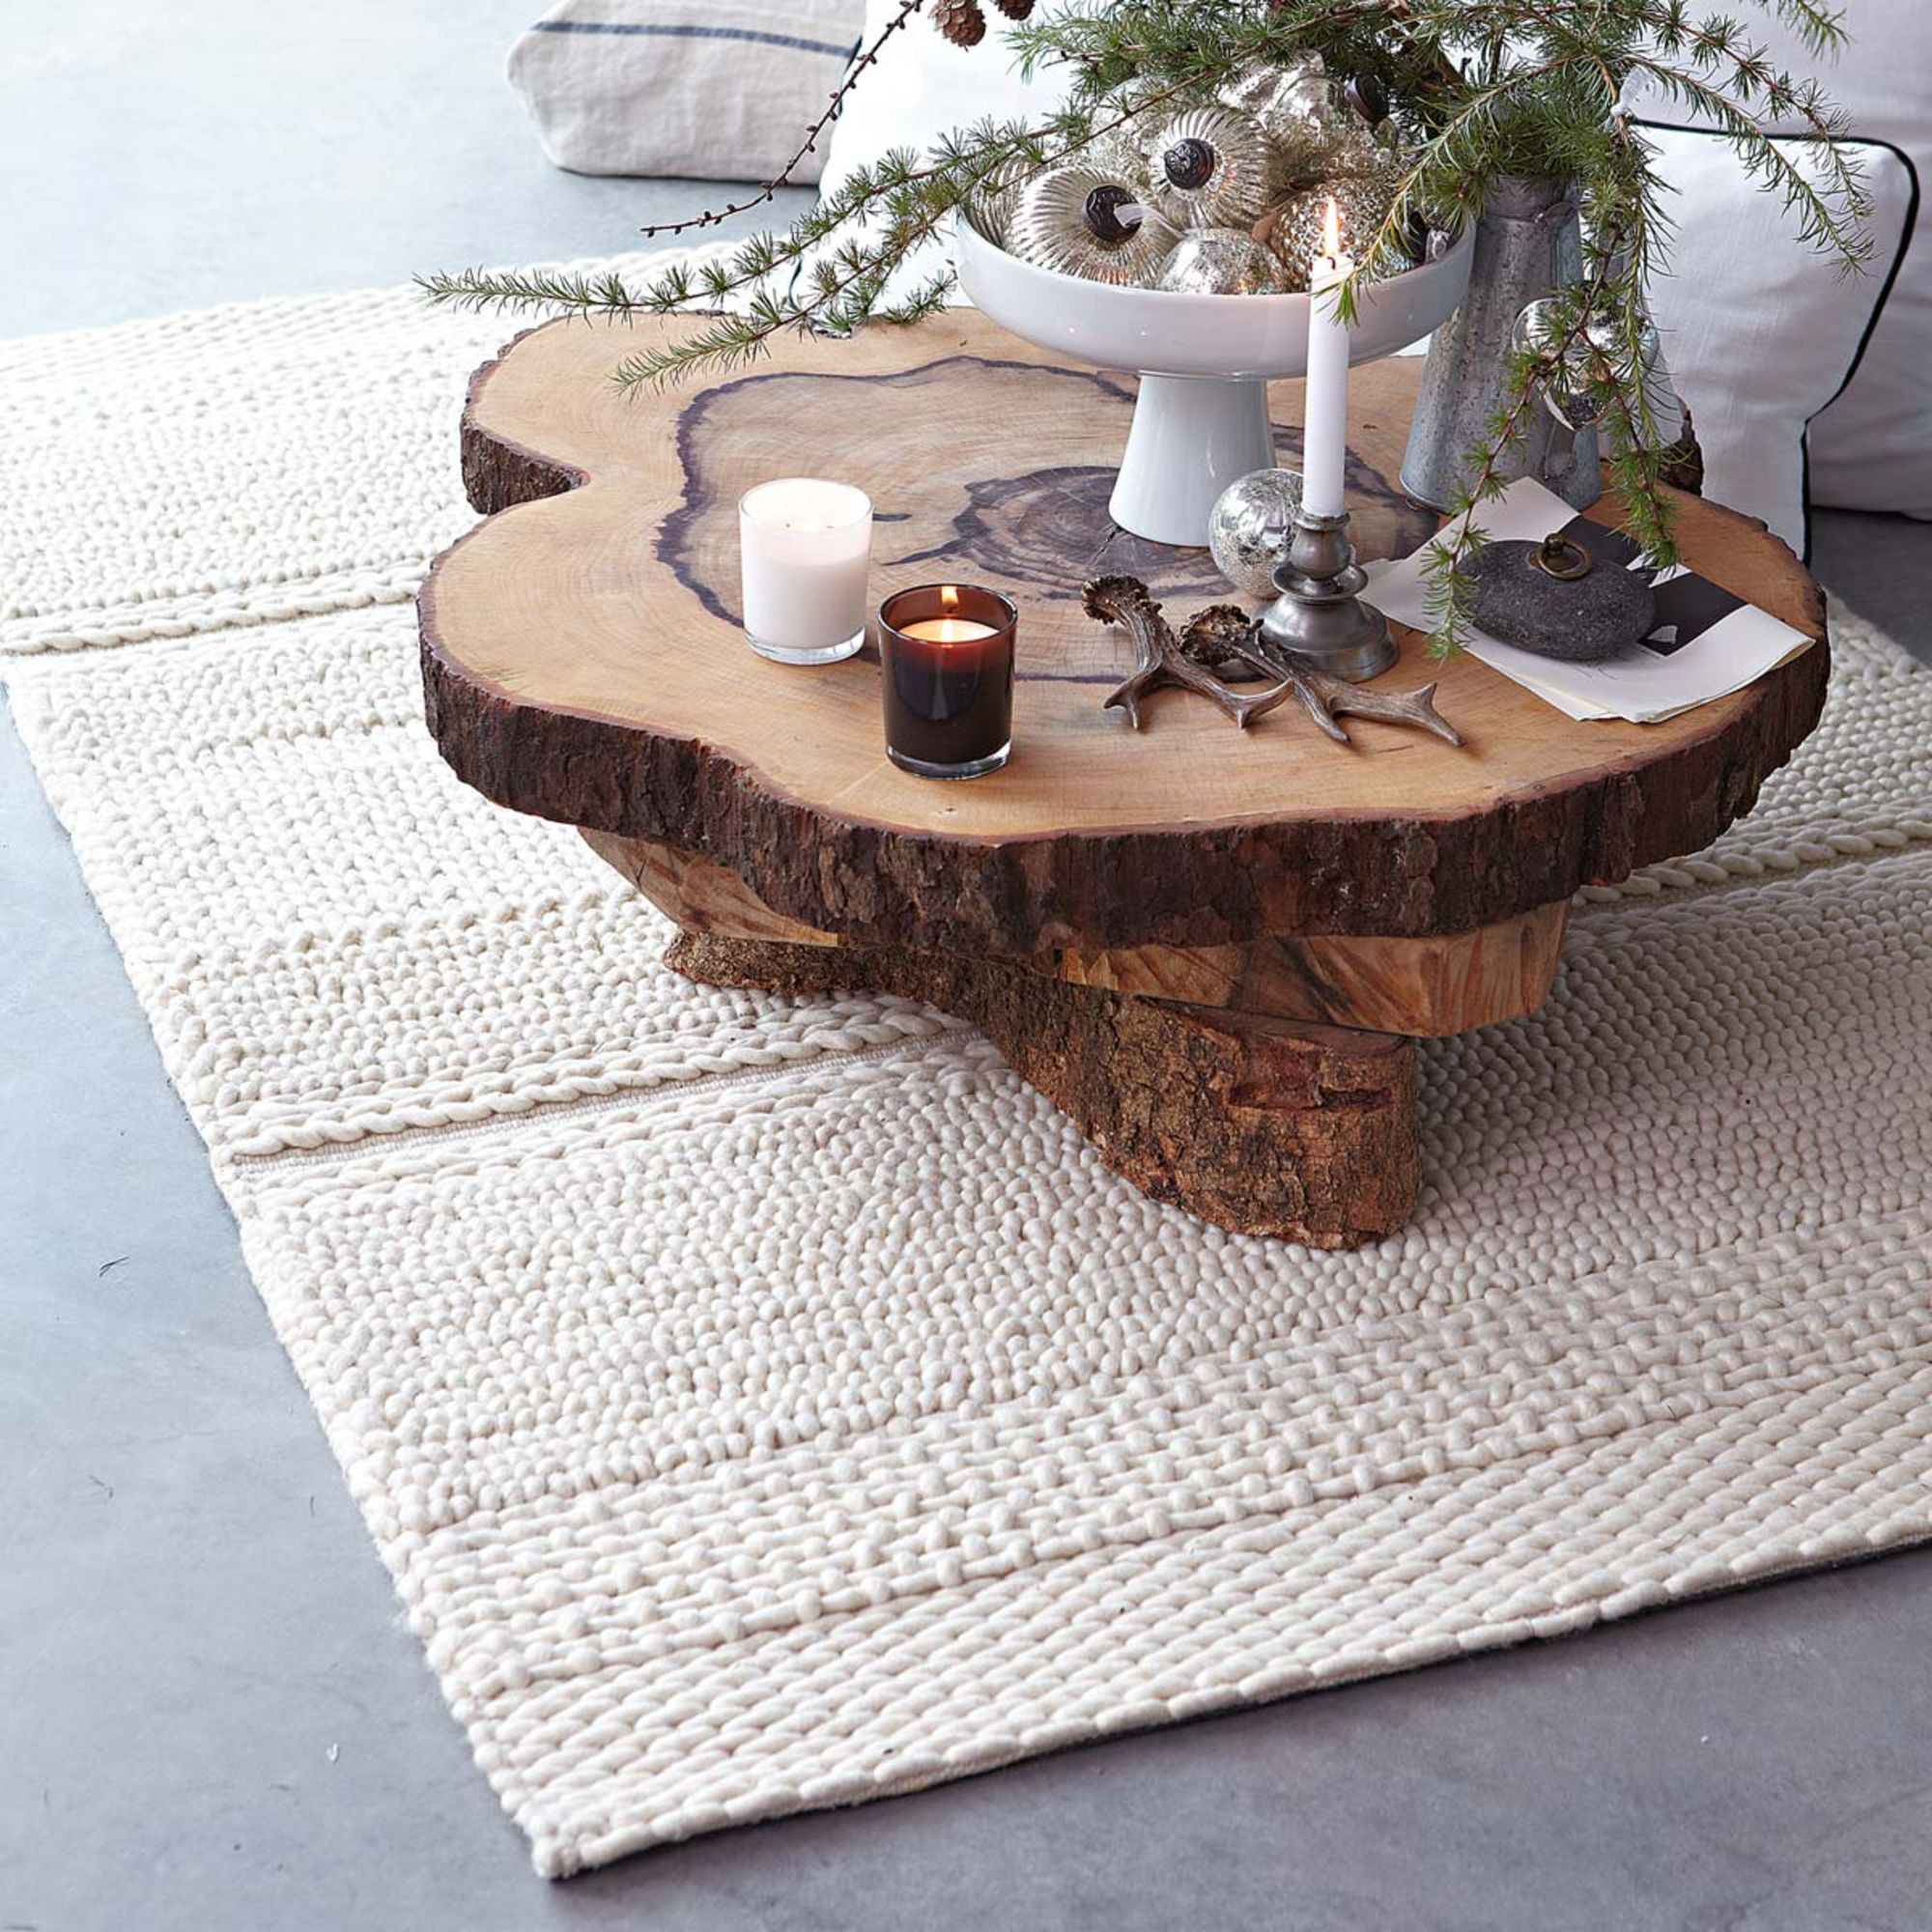 Couchtisch Aus Naturbelassenen ästen Rounds Coffee Table Projects Pinterest Tisch Holz Und